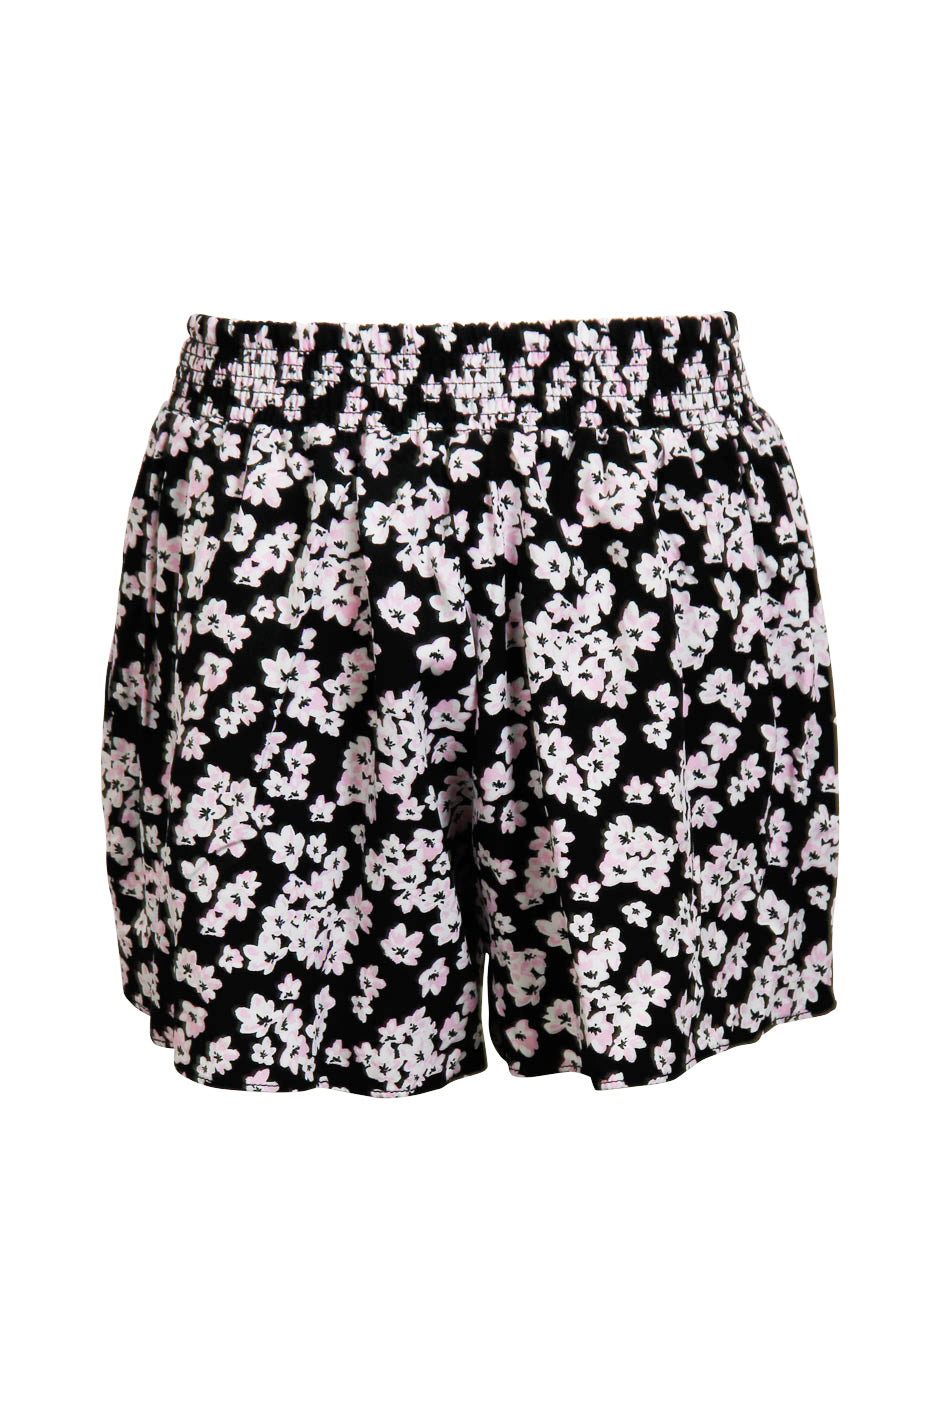 Women's Missy Fashion Mid length Board Shorts at